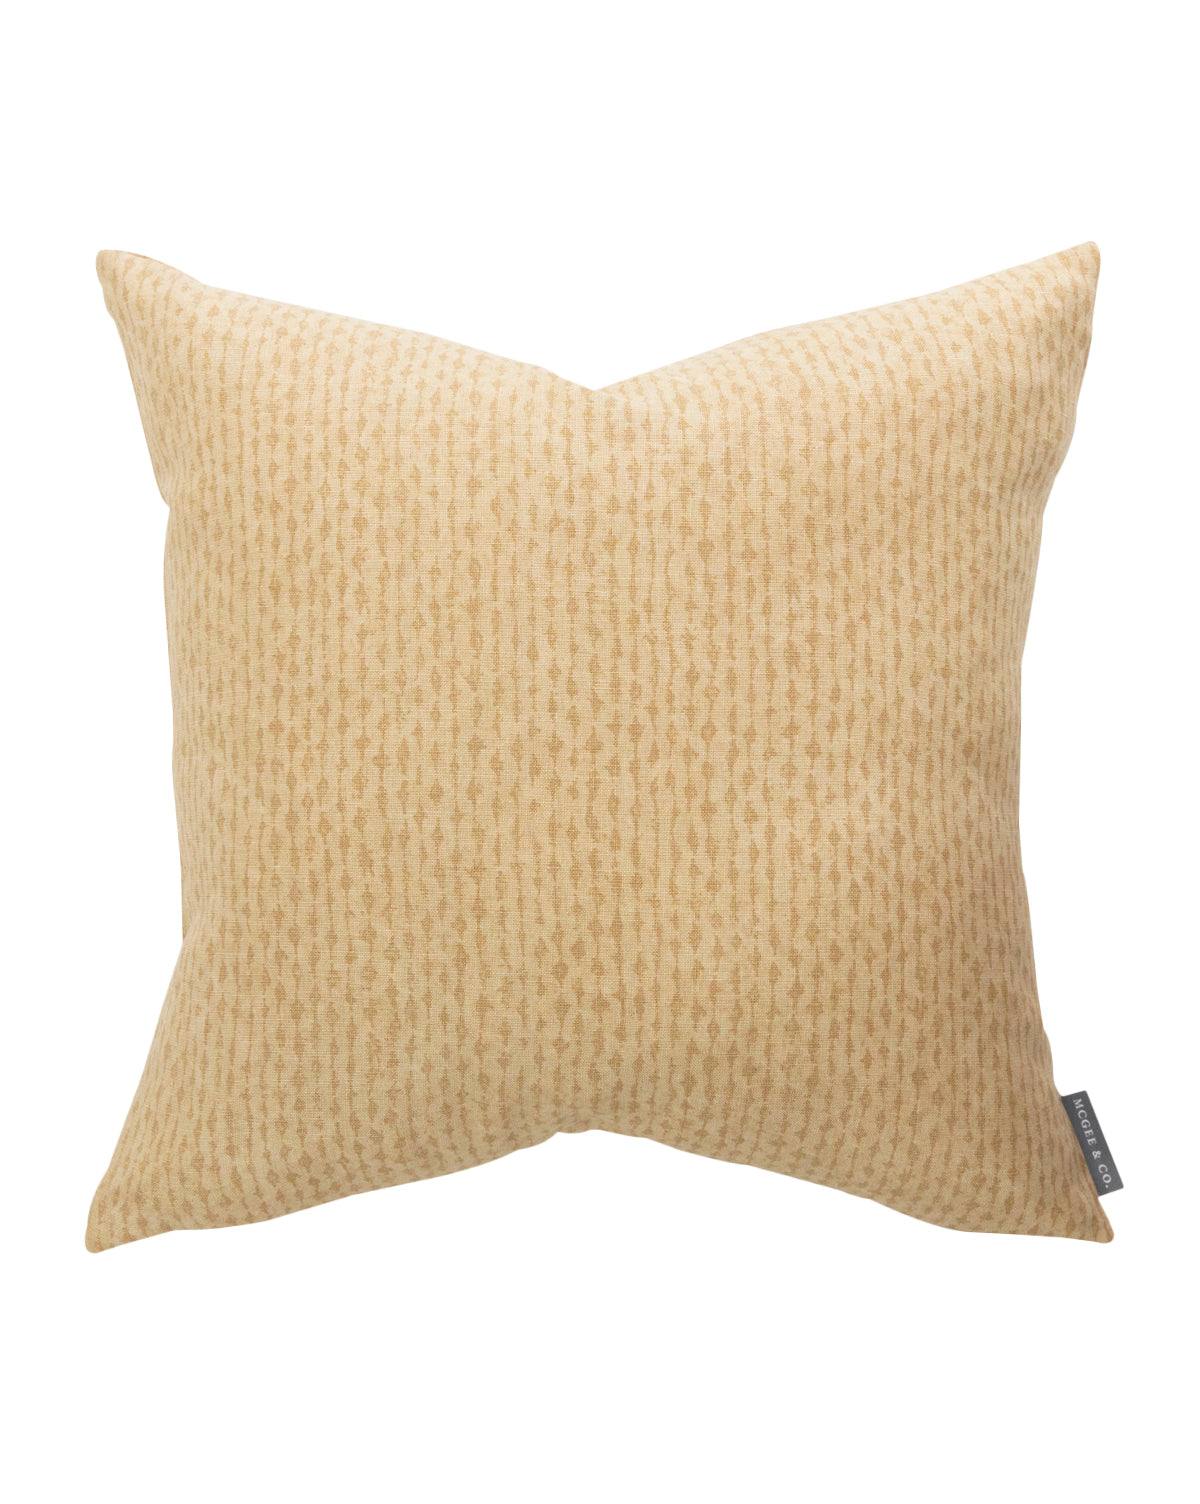 Lottie Pillow Cover